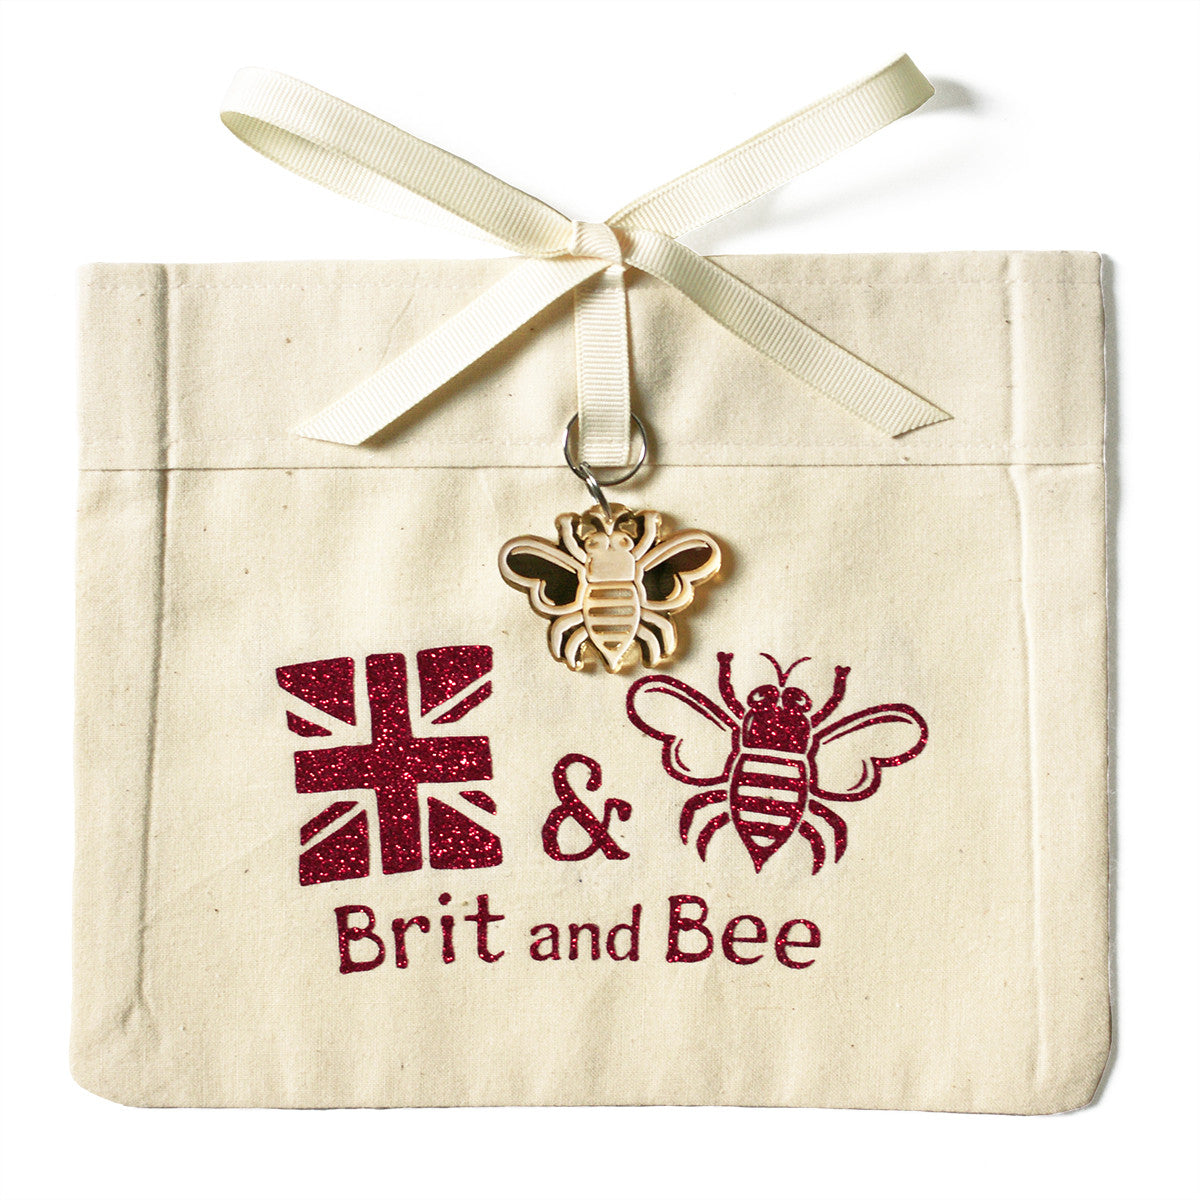 Brit and Bee Sorority Monogram Coaster - Alpha Omicron Pi